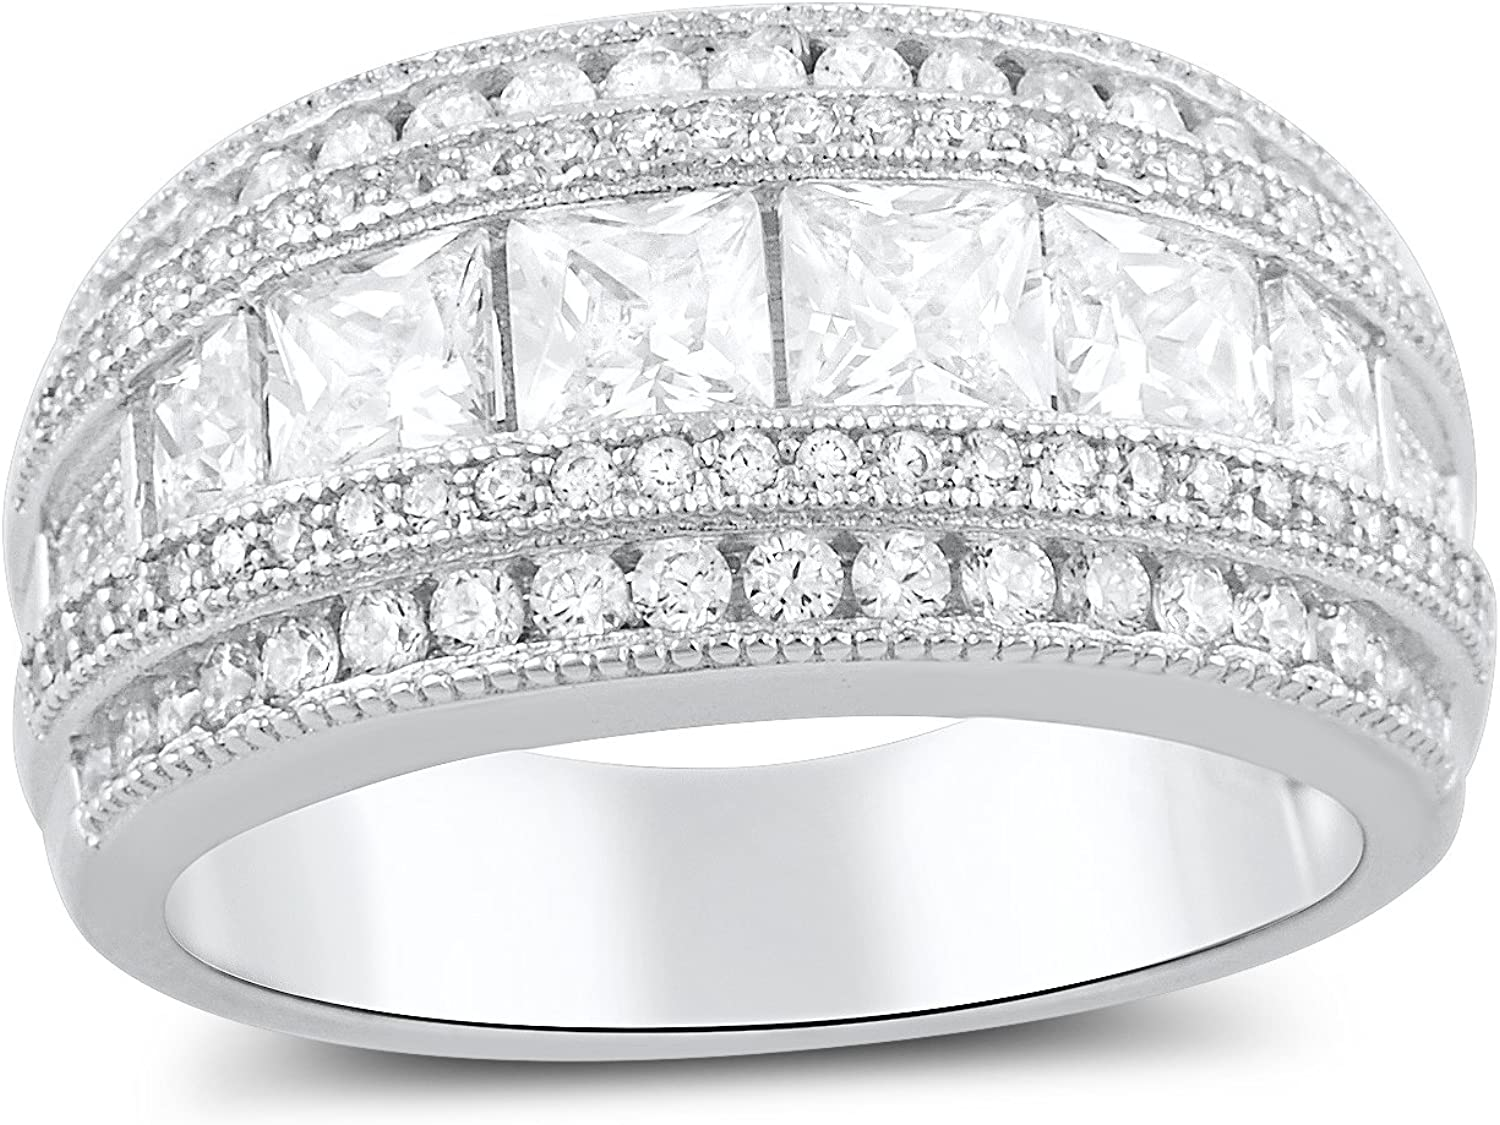 Sterling Silver Wide Square Cut Cz Statement Ring (Size 4-11)